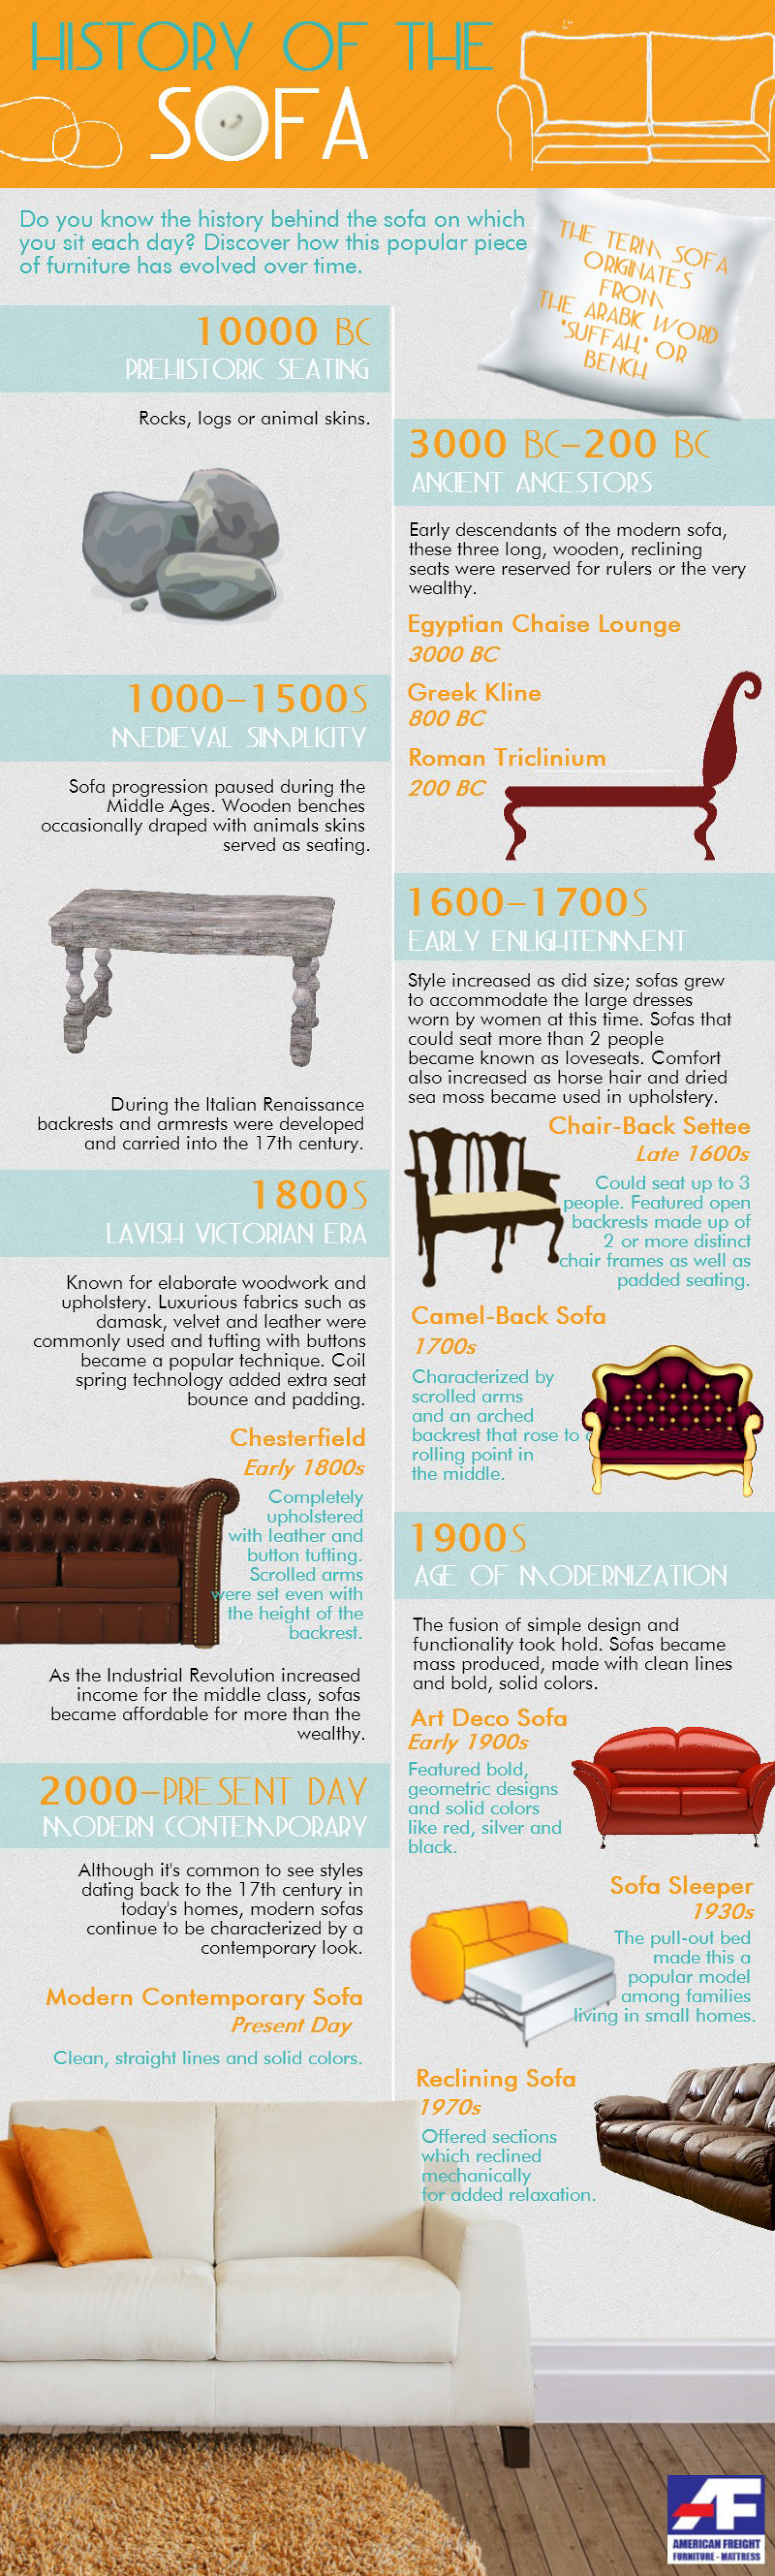 History of the Sofa Infographic